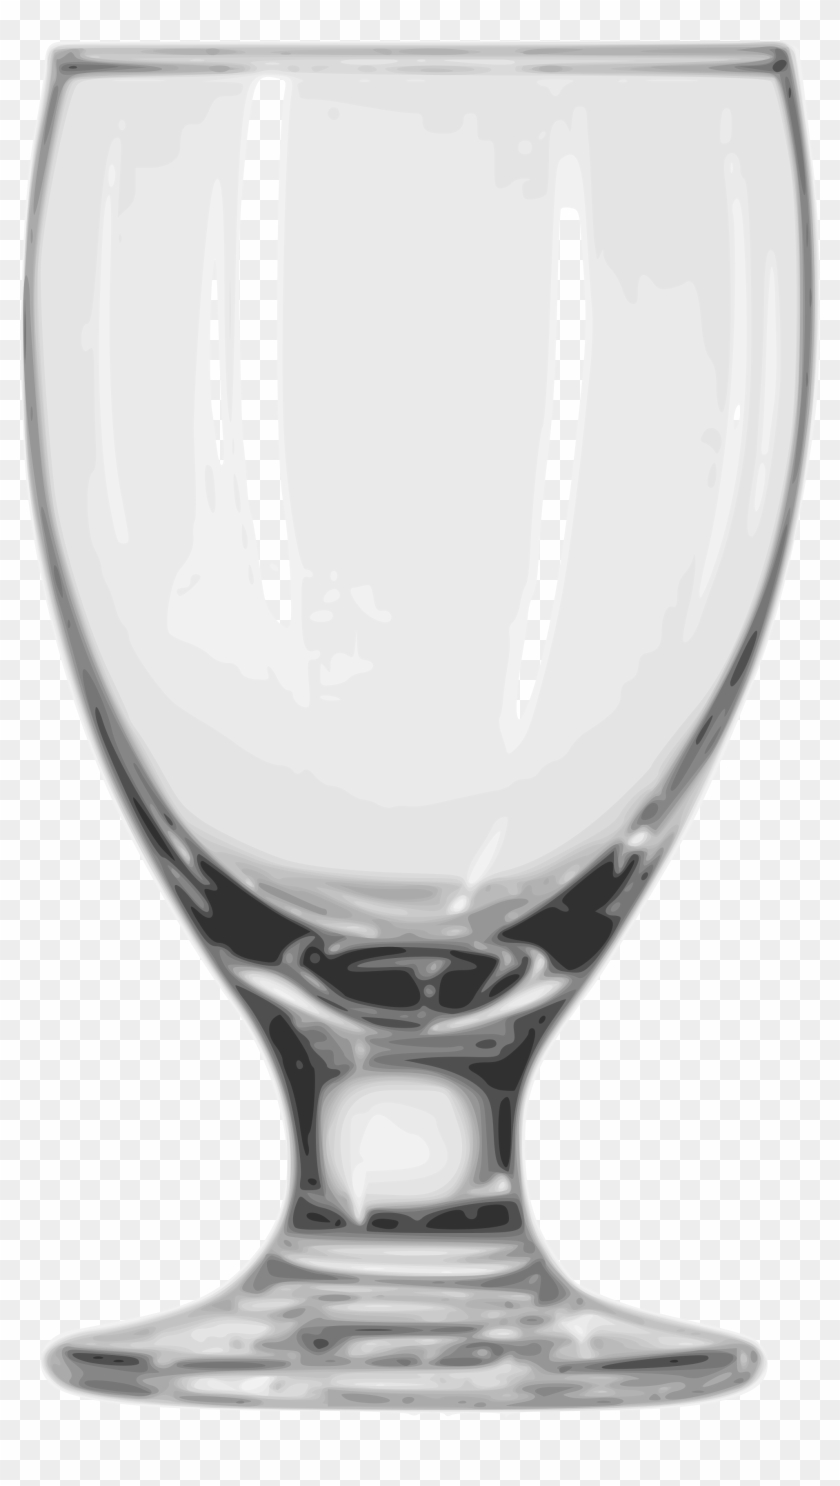 Open With Glass - Libbey 10-1/2 Oz. Embassy Banquet Goblet Glass 3712 #640586